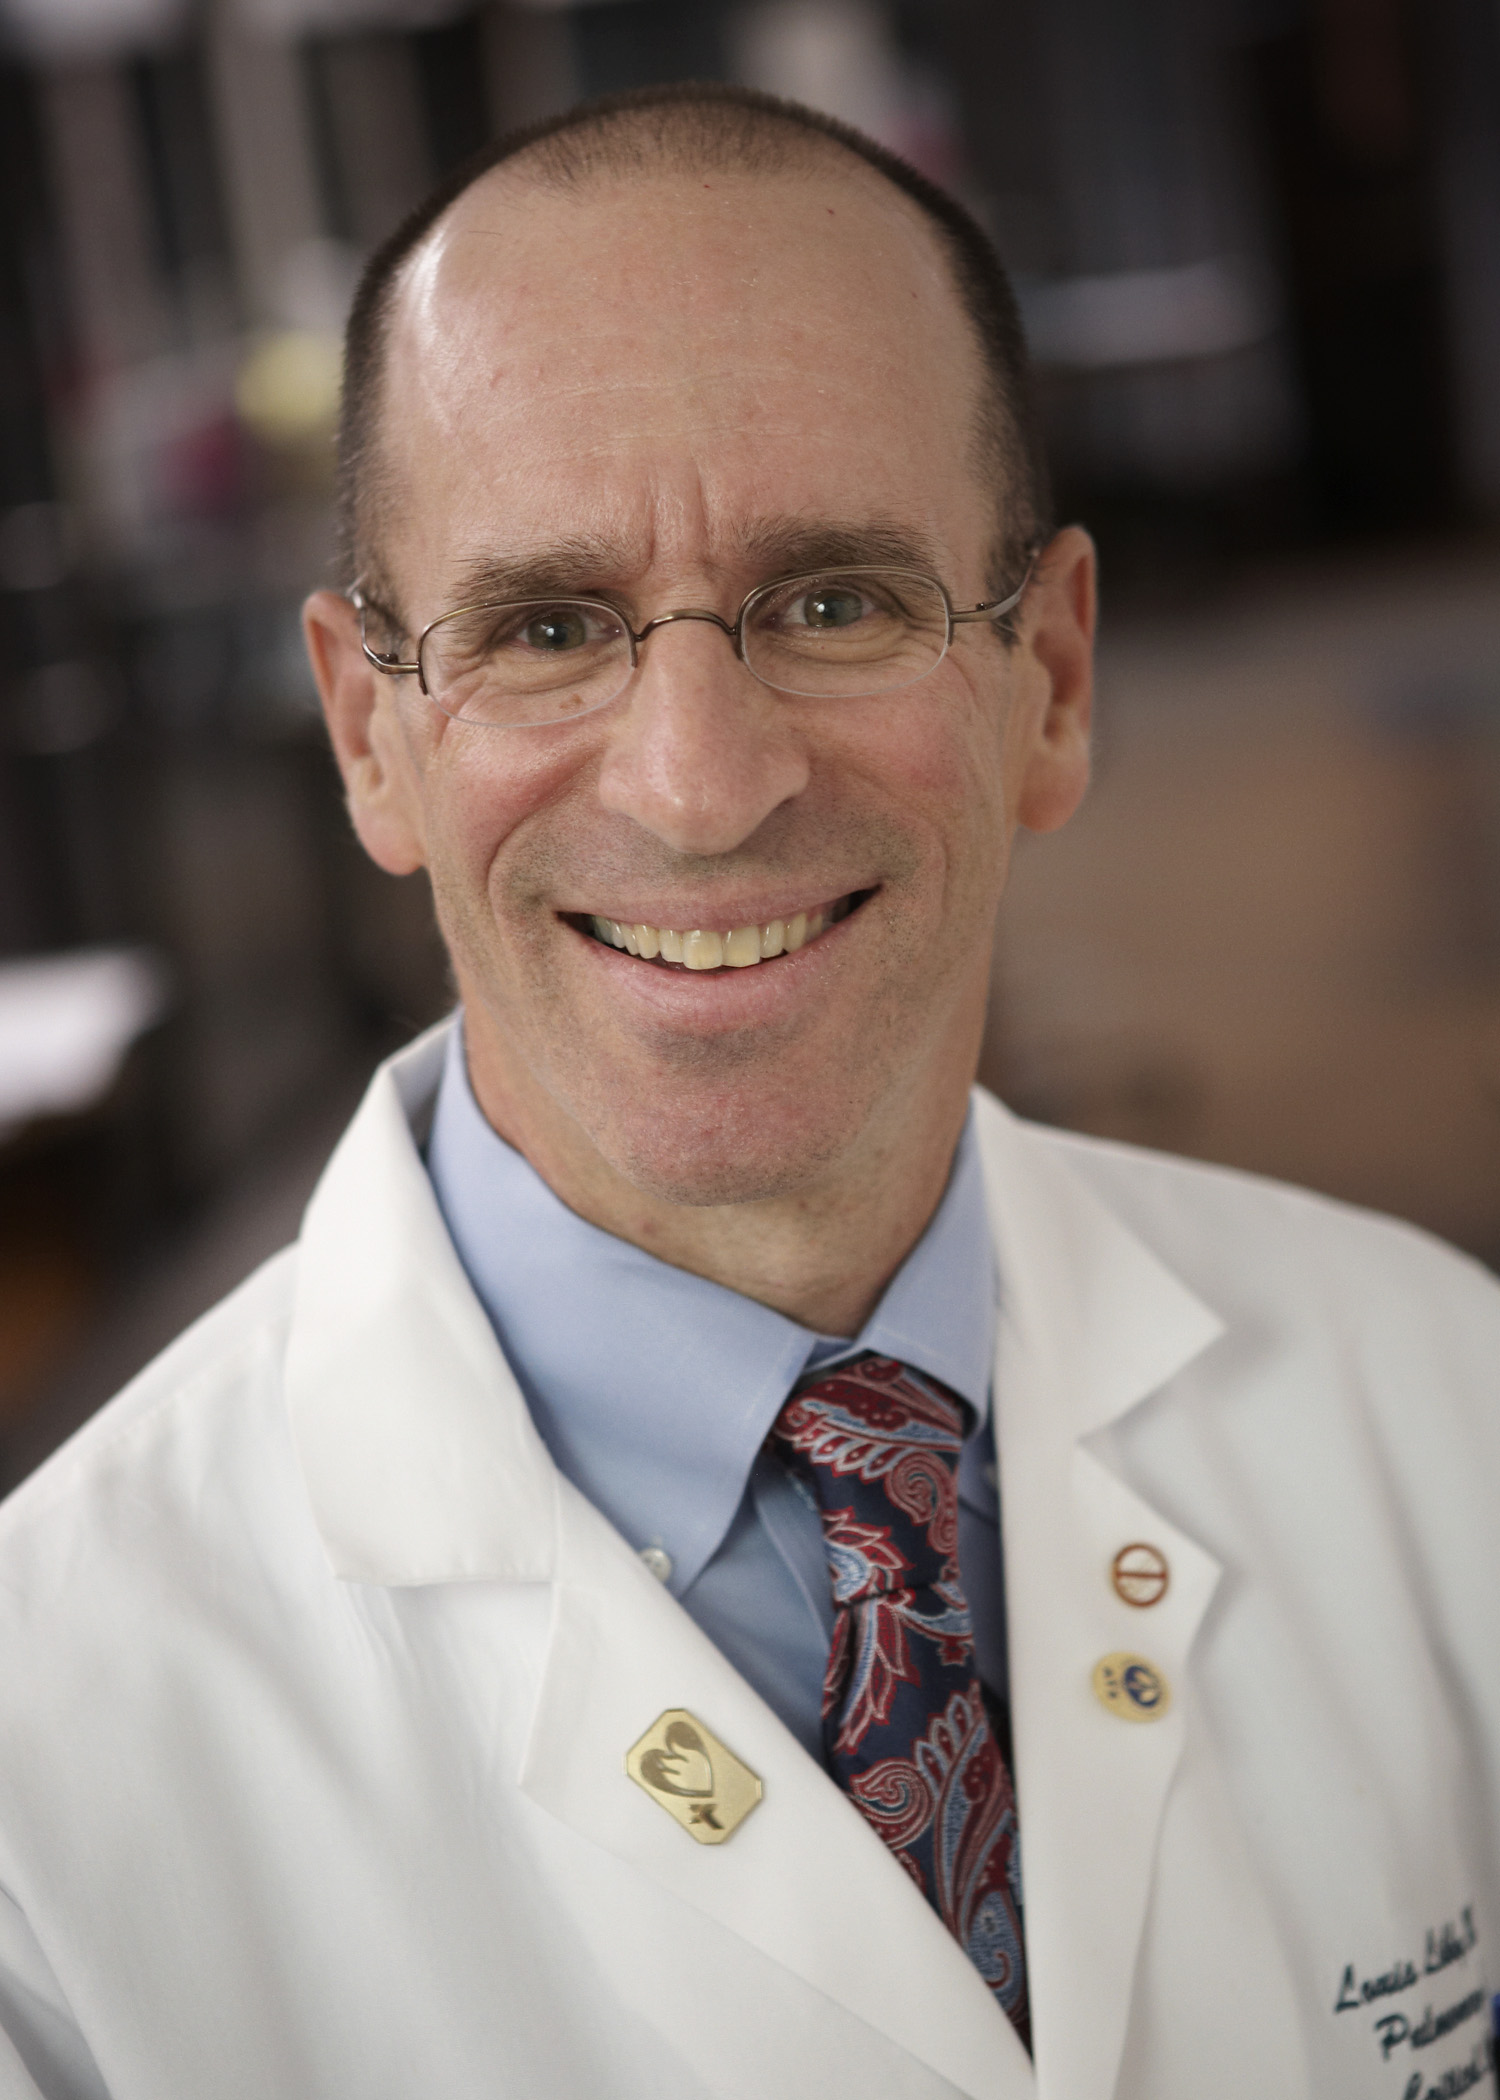 Louis Libby, FCCP, MD